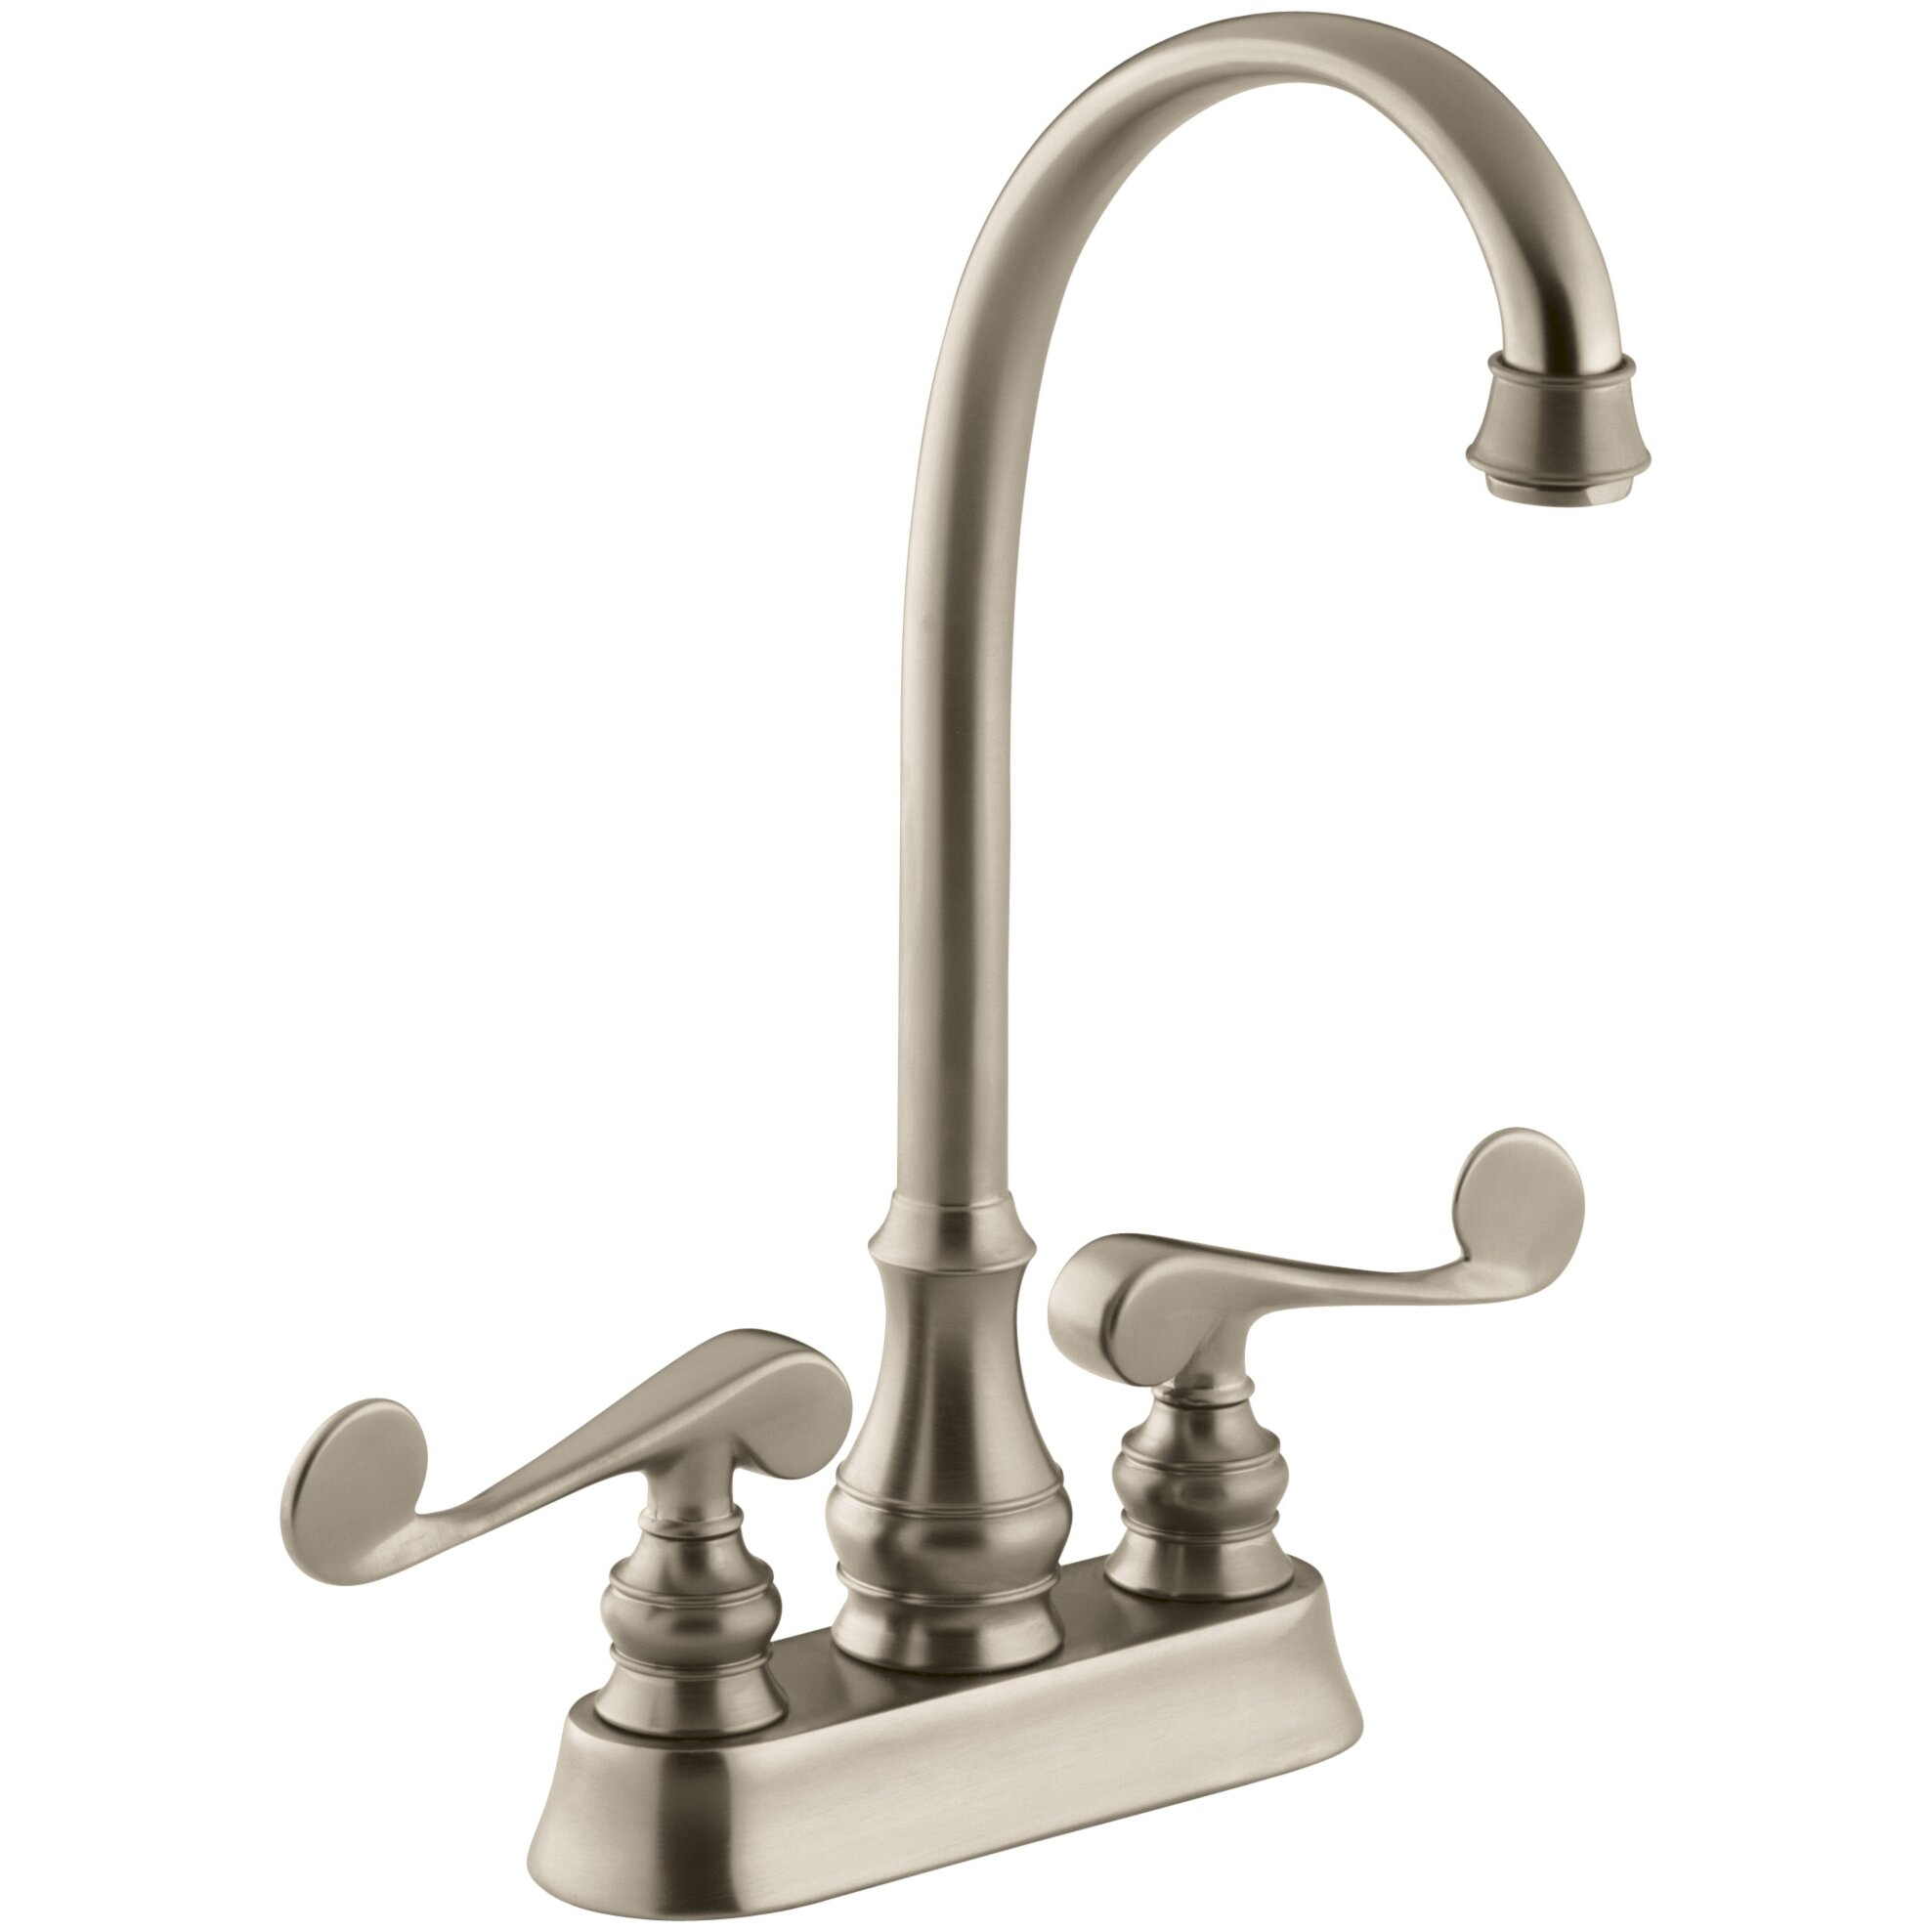 Bar Sink Faucet : ... Revival Two-Hole Centerset Bar Sink Faucet with Scroll Lever Handles